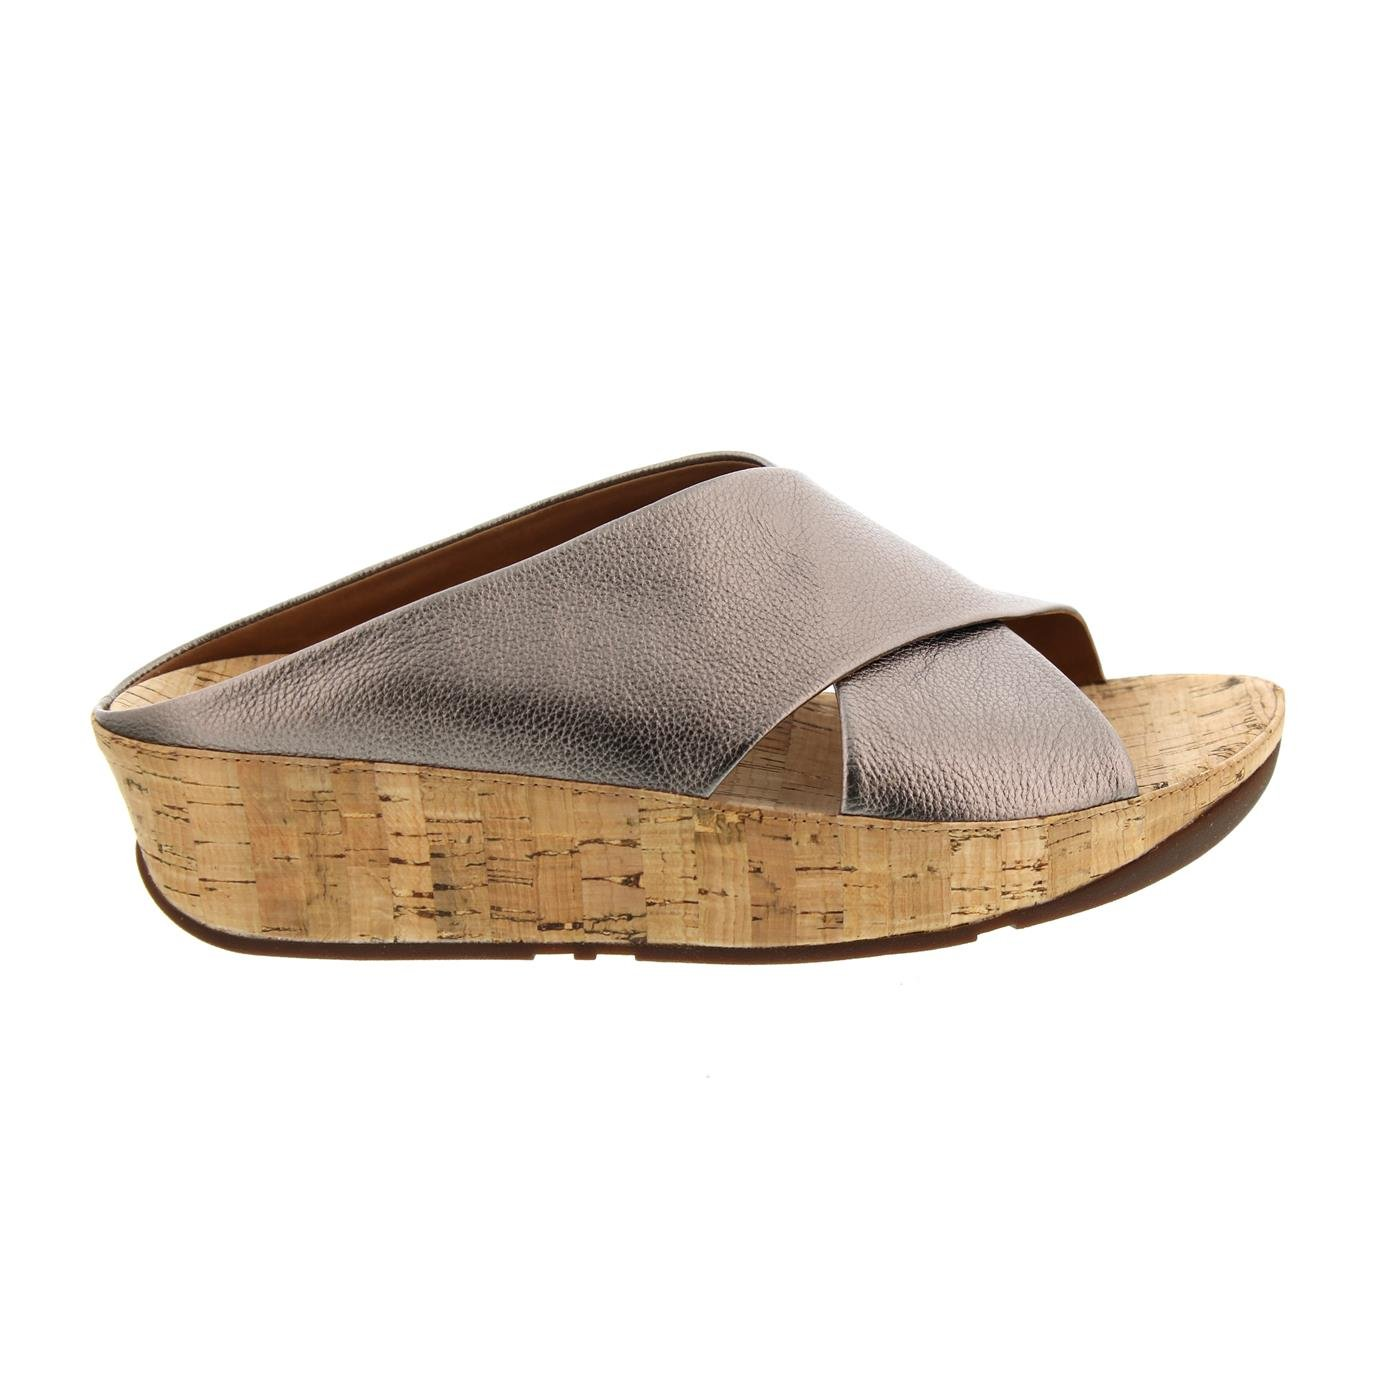 FitFlop Womens KYS Slide Open Toe Sandal Shoes, Bronze, US 10